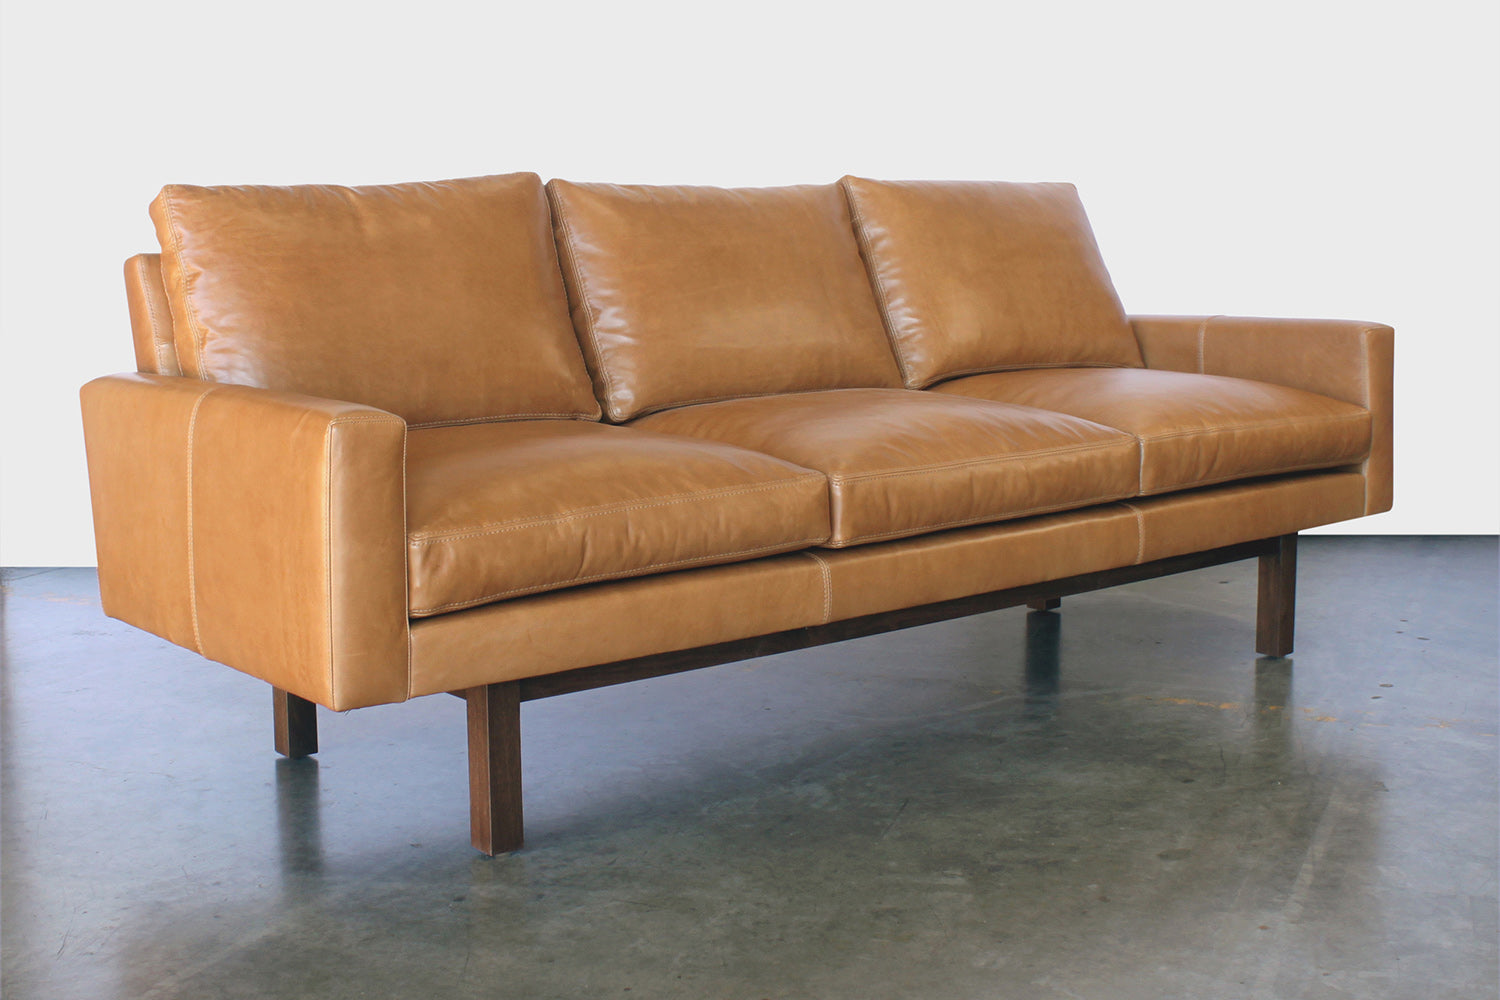 Standard Sofa, Large in Caramel